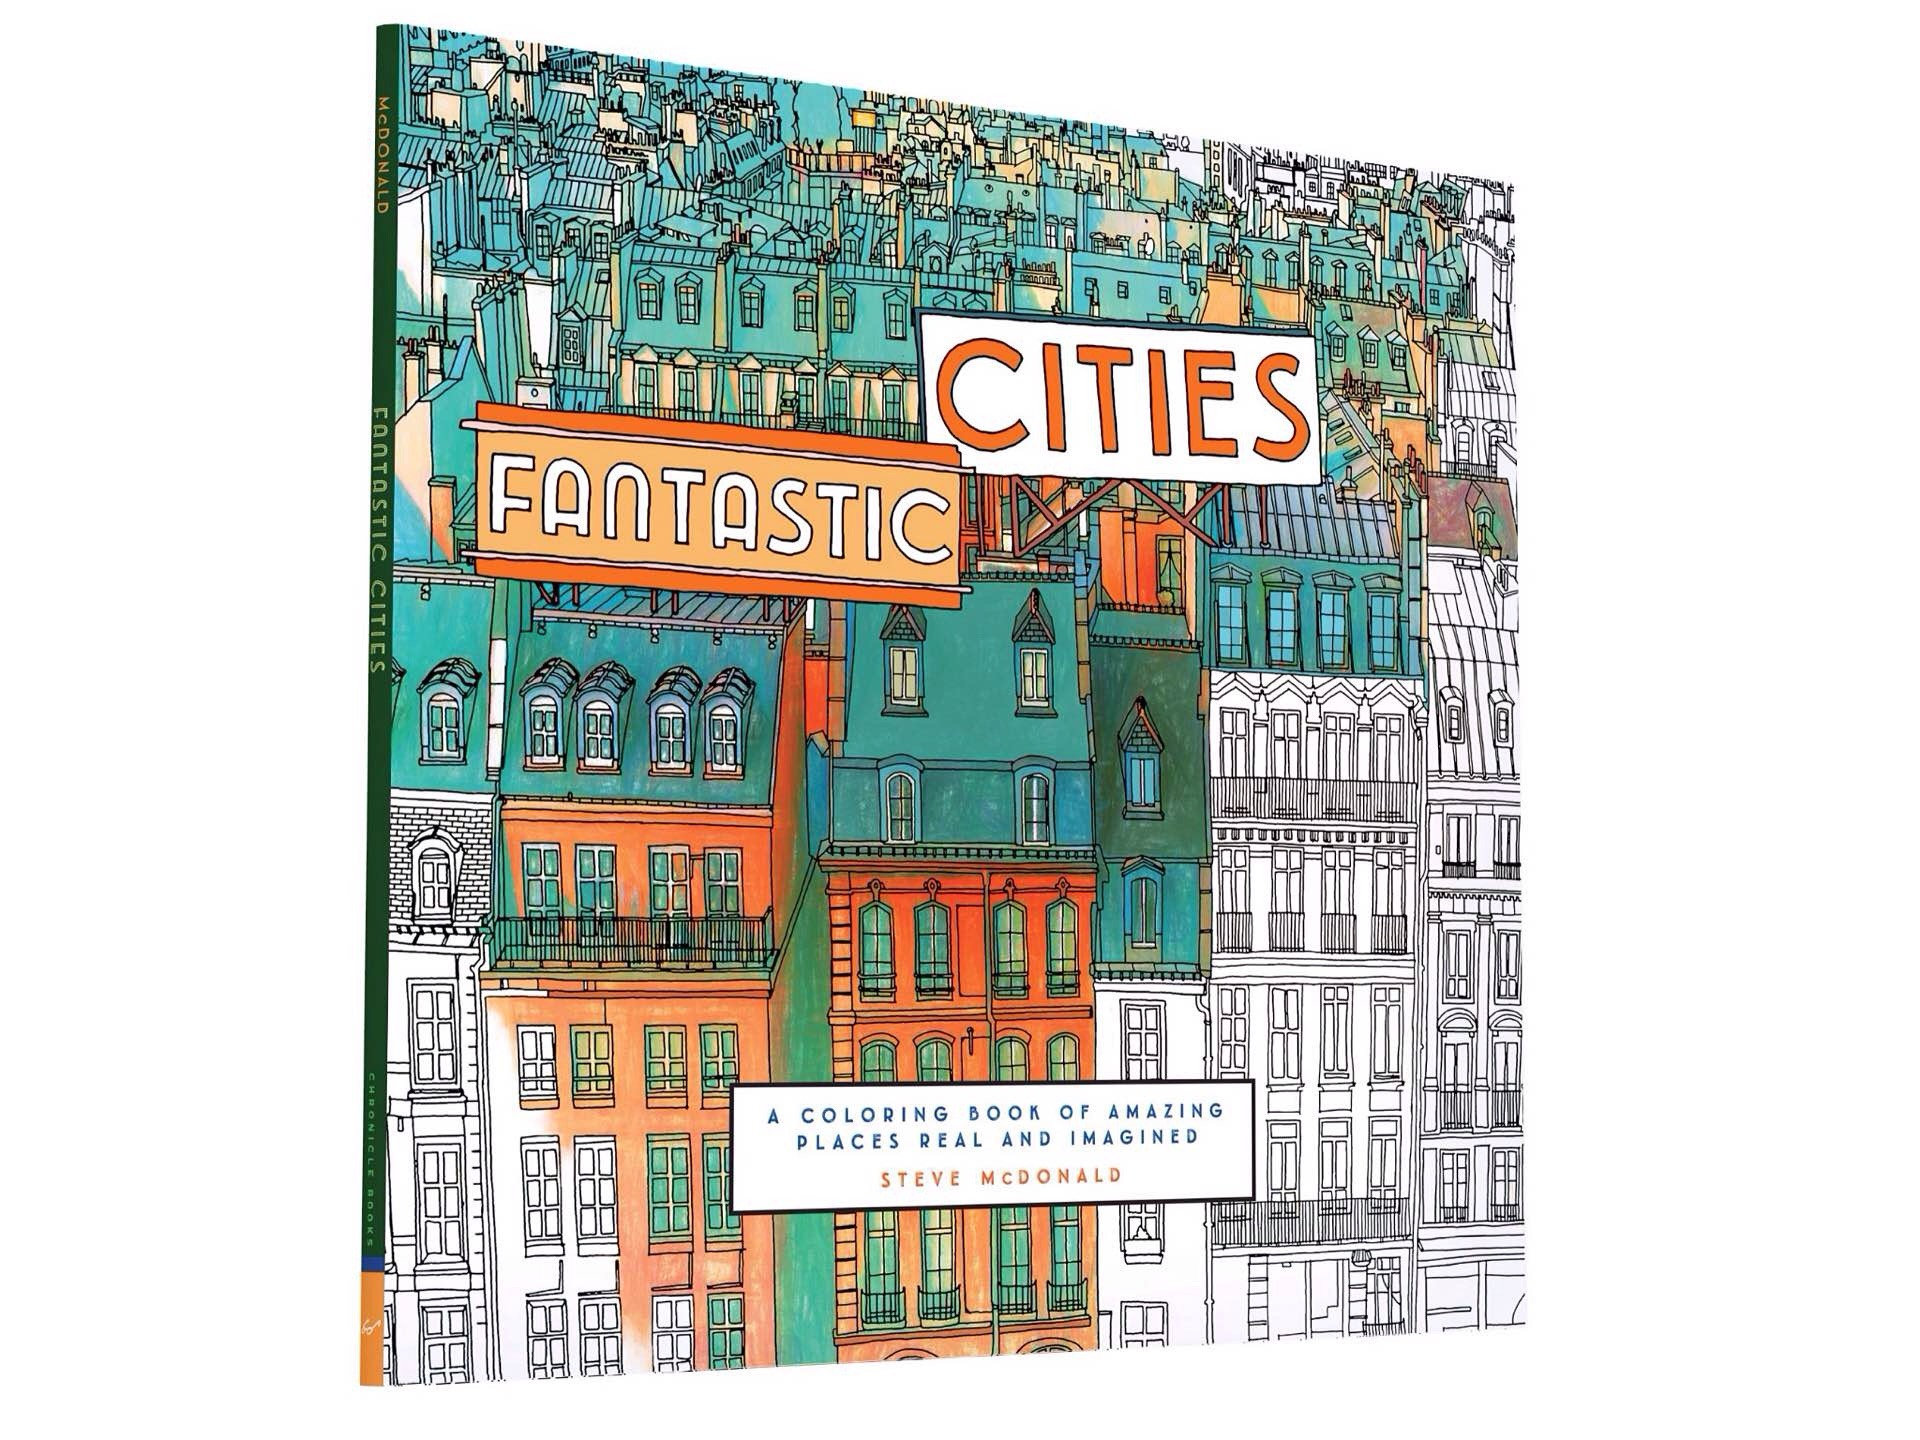 Fantastic Cities: A Coloring Book of Amazing Places Real and Imagined by Steve McDonald.